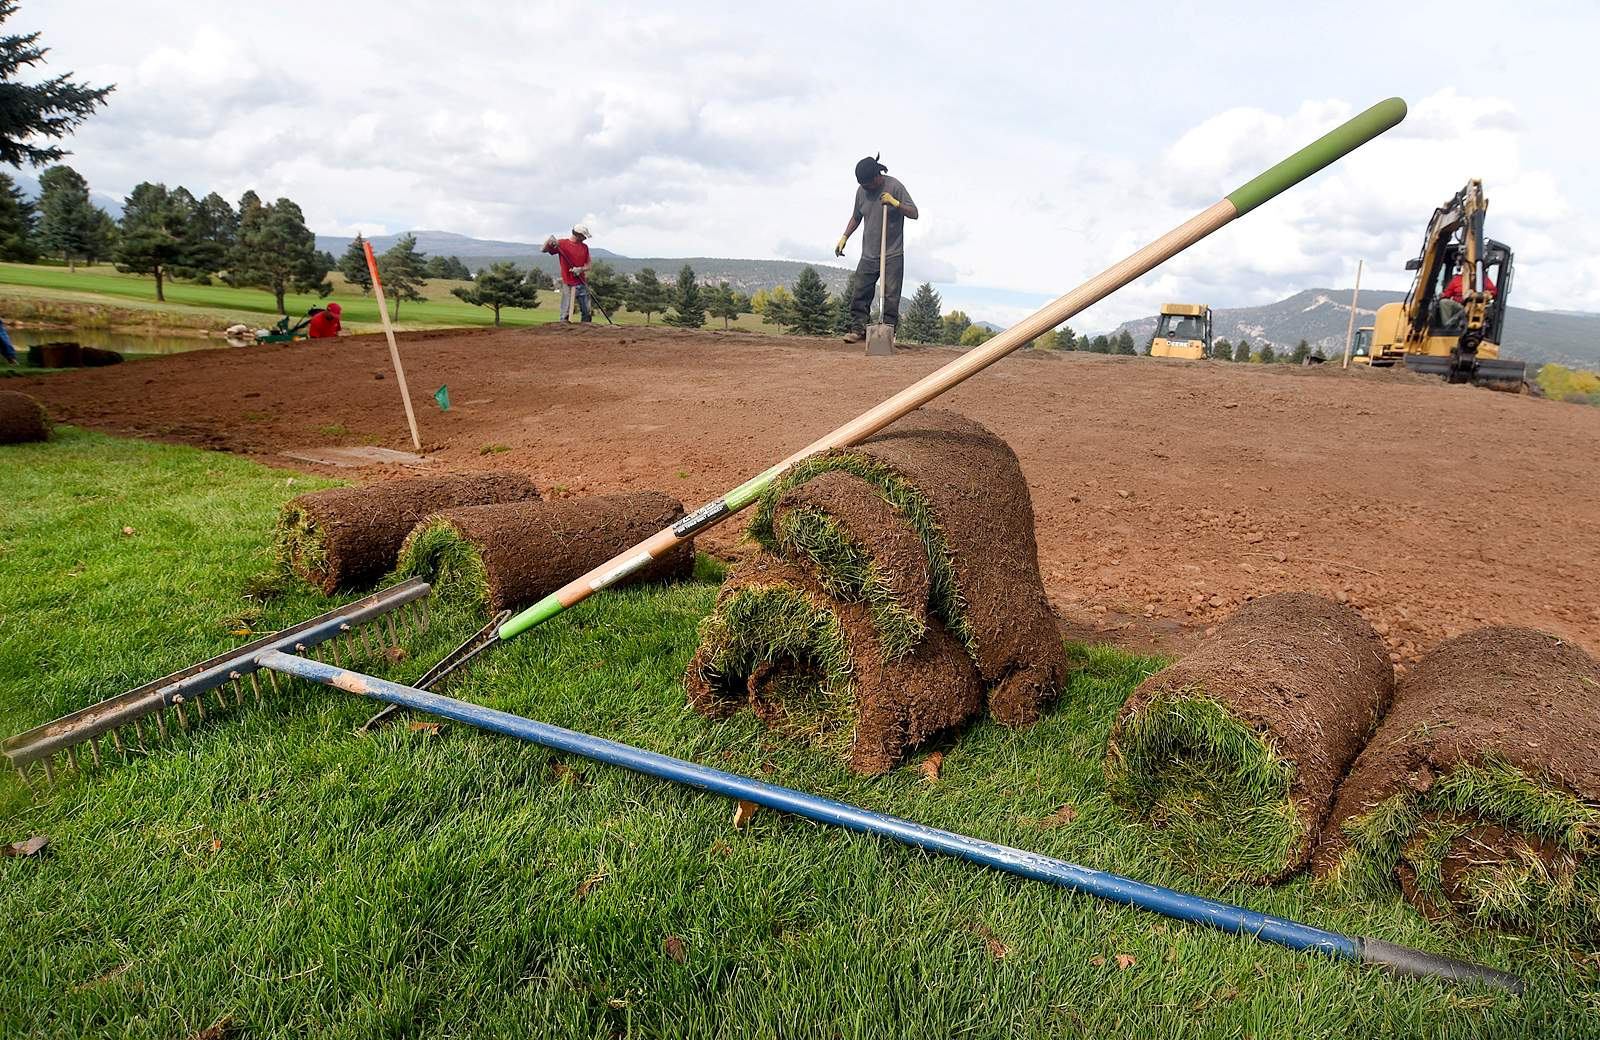 Hillcrest Golf Club sued over tee box placement